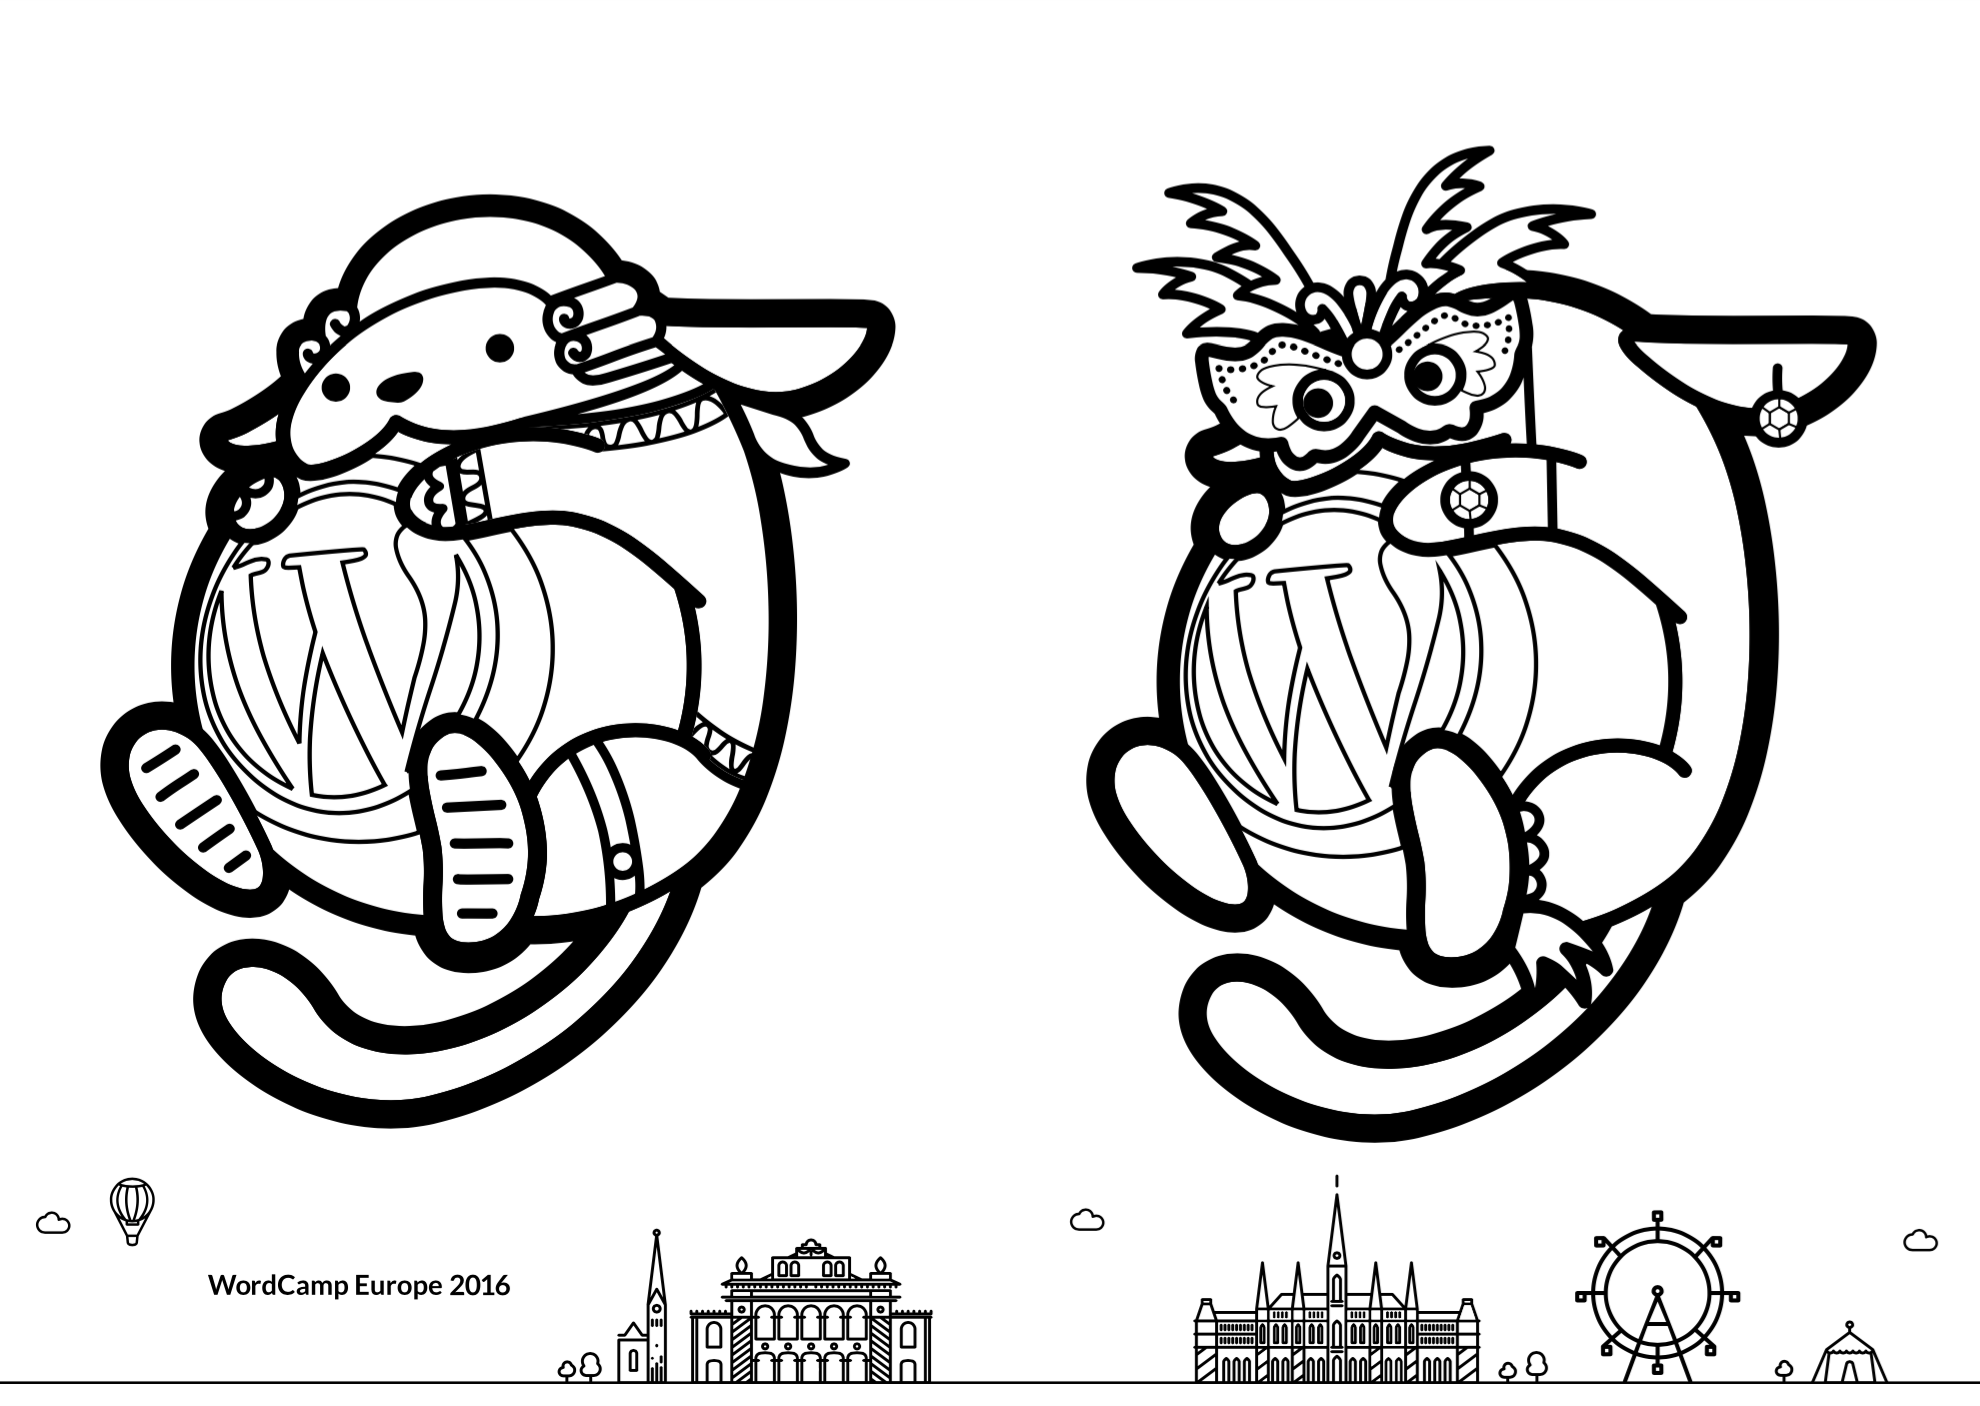 The coloring book project 2 download - Download The Coloring Book